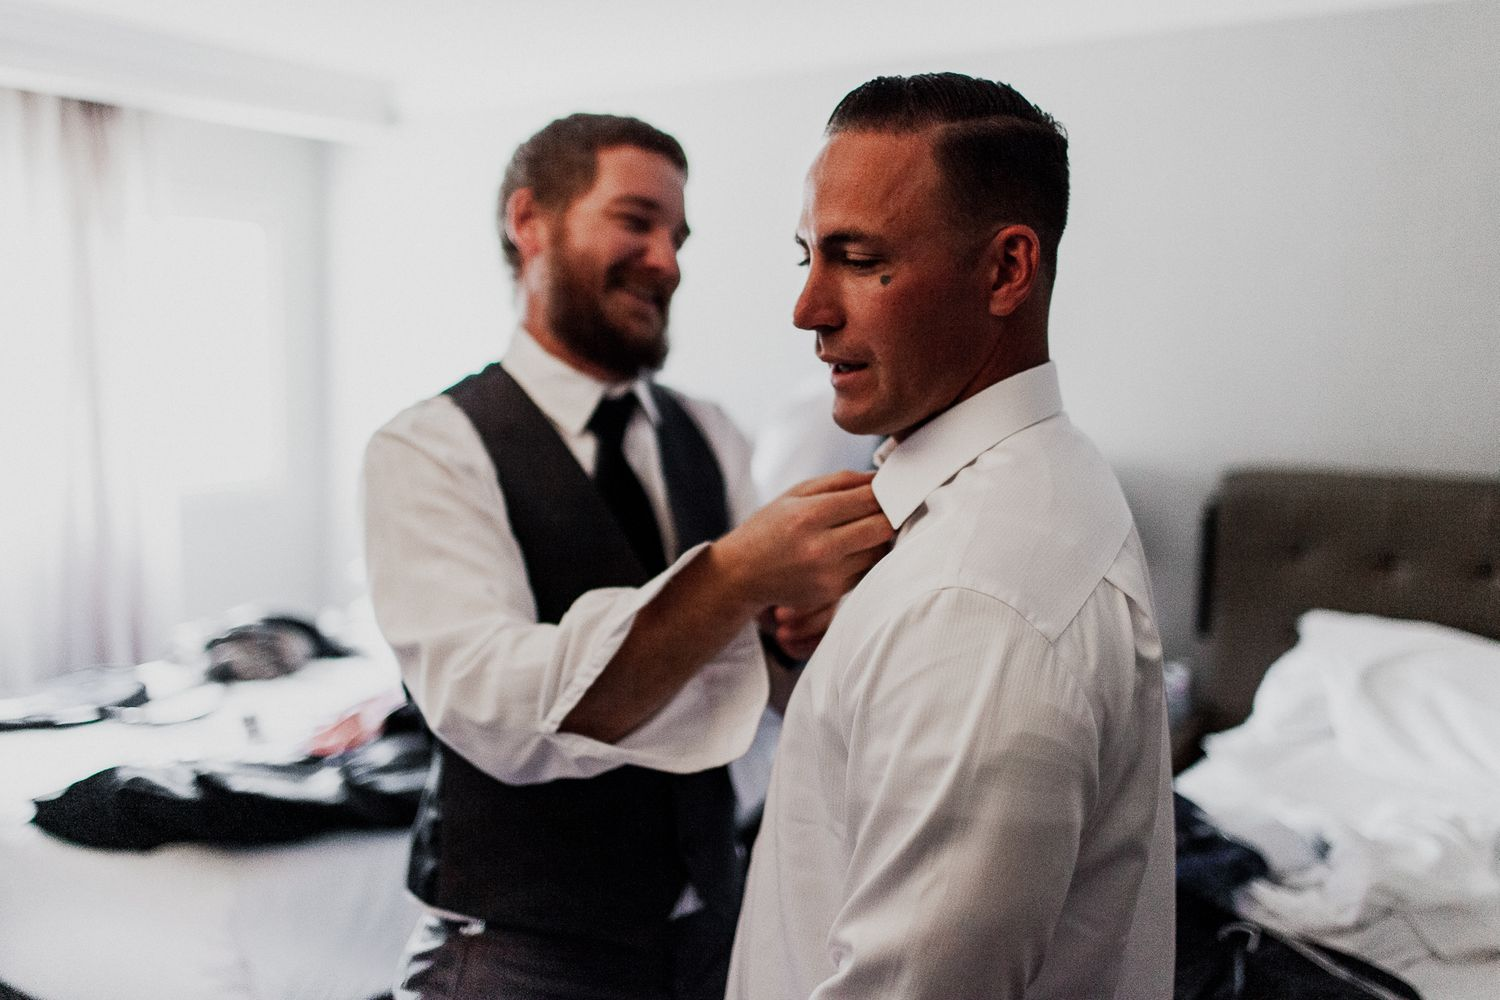 best man helping groom with button